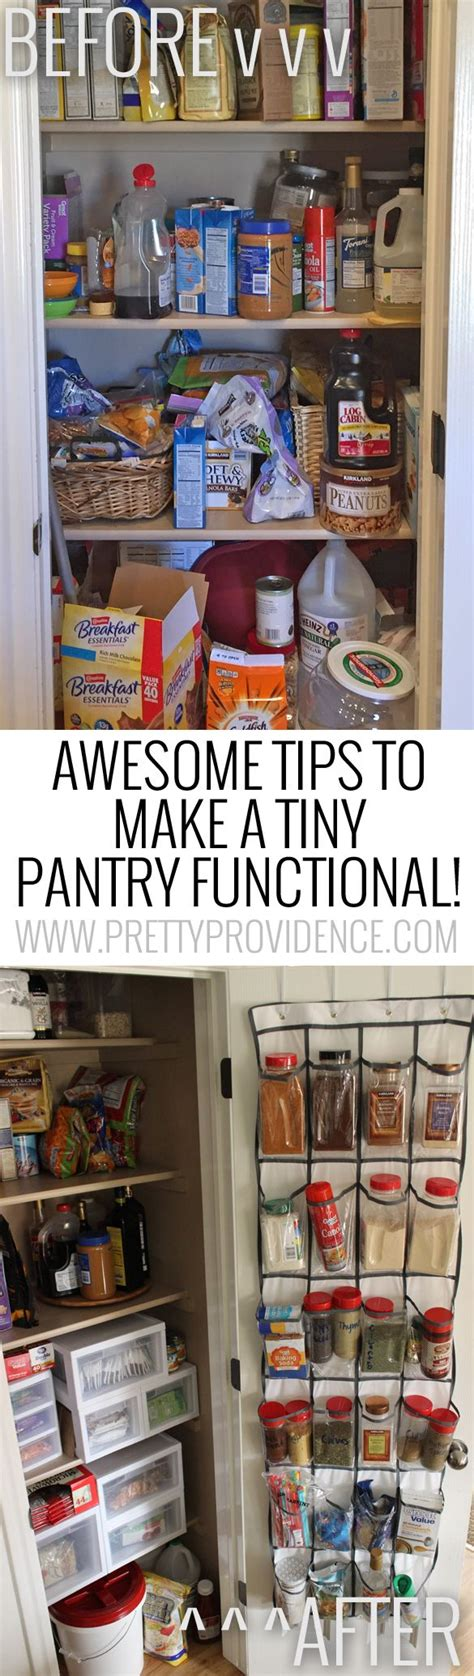 How To Organise A Pantry Cupboard by 25 Best Ideas About Shoe Hanger On Clothes